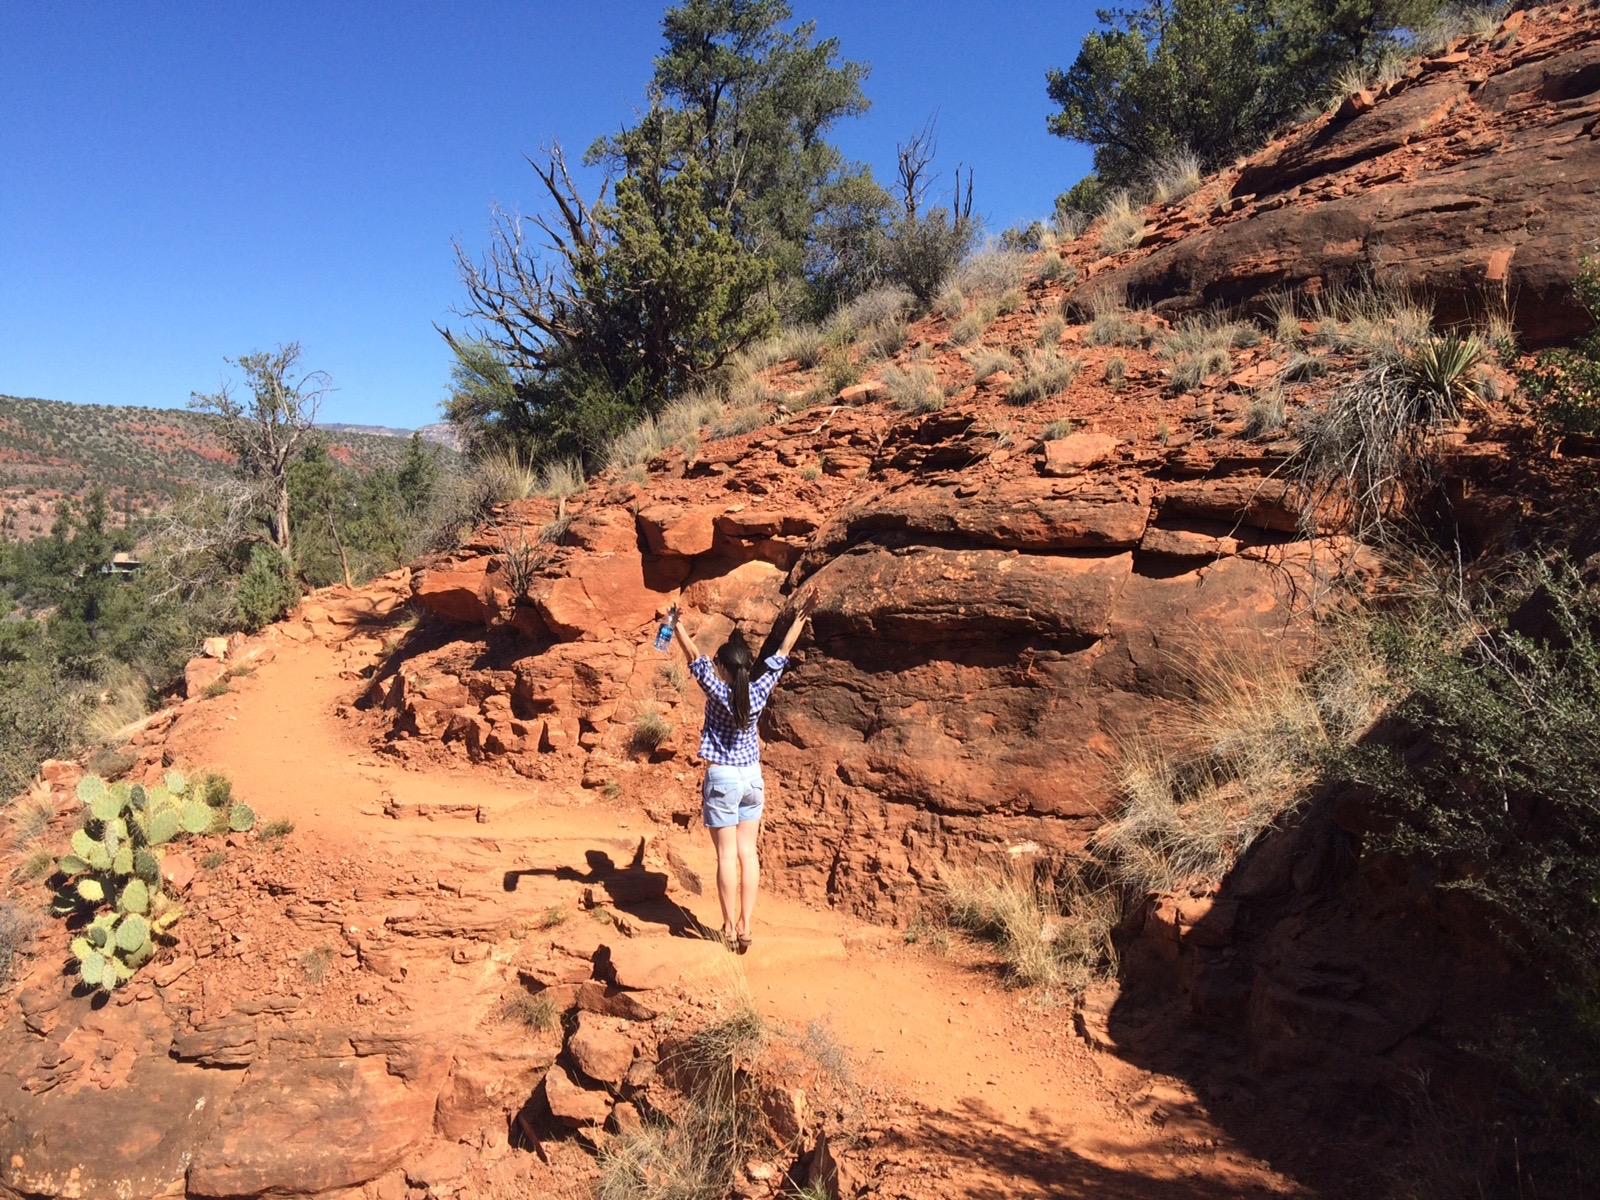 Celebrating newfound freedom and joy while hiking with my cousin in Sedona. February 2016.